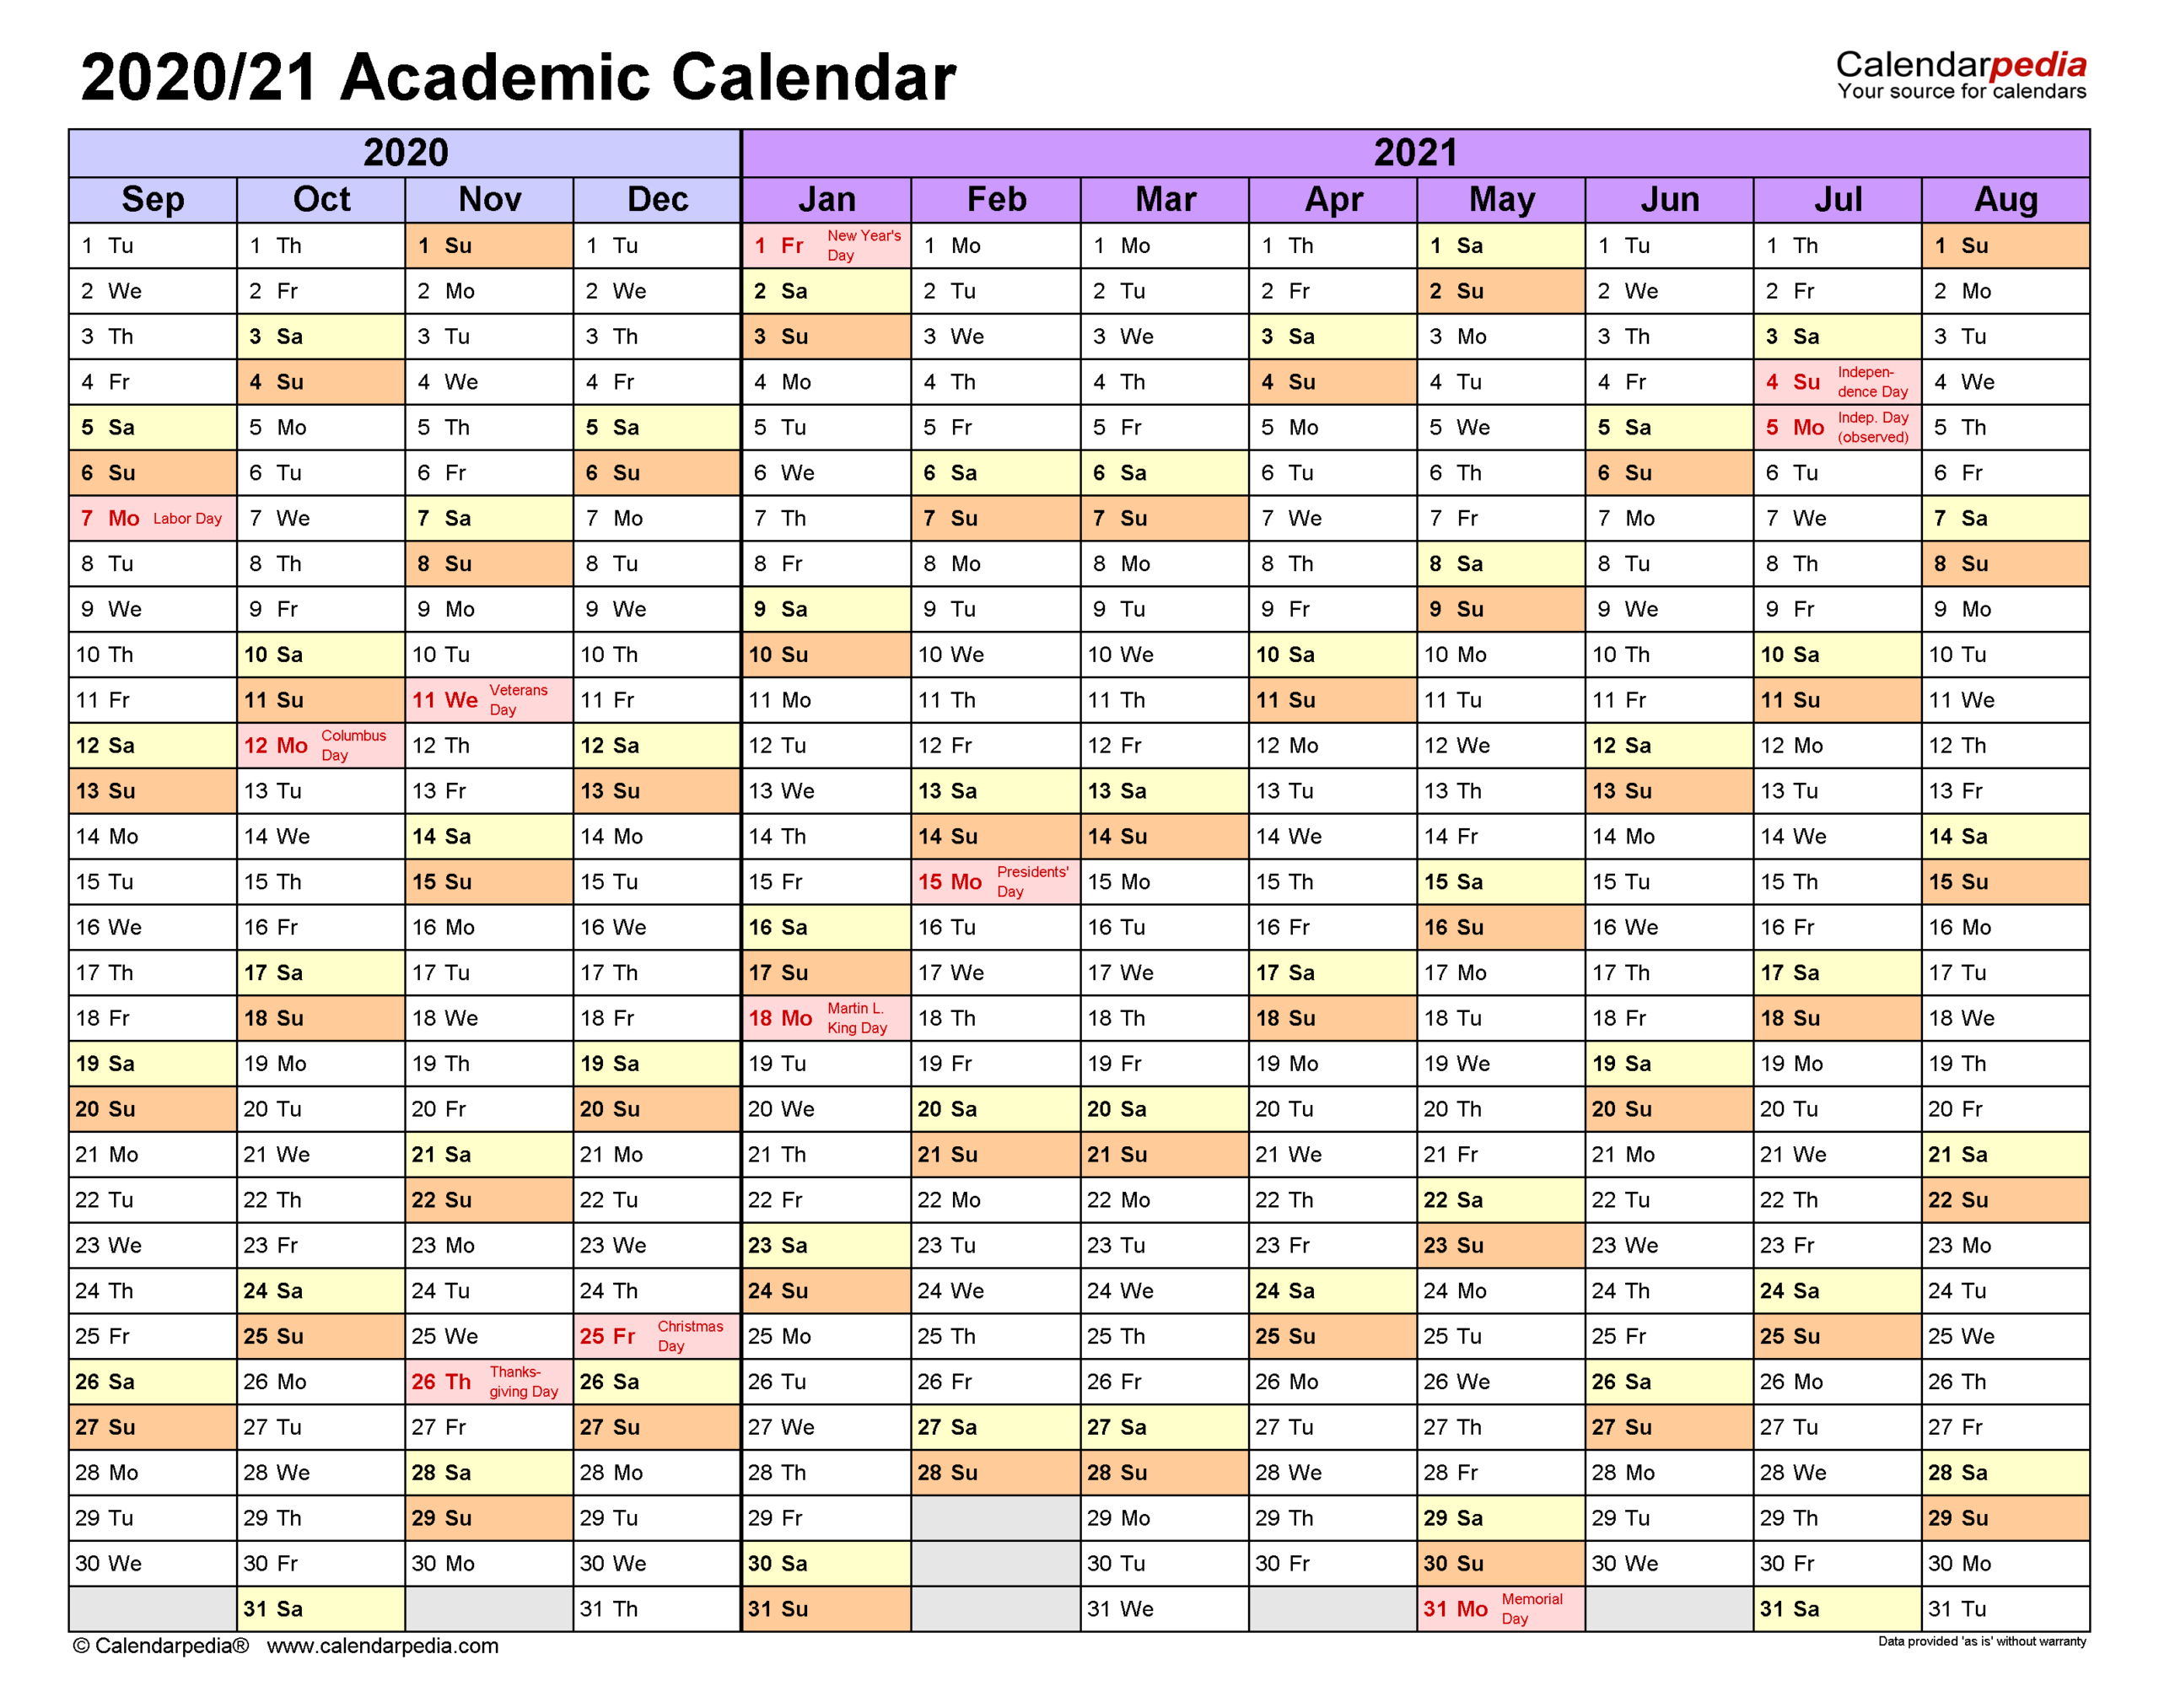 Academic Calendars 2020/2021 - Free Printable Excel Templates pertaining to Academic Diary August 2021 To August